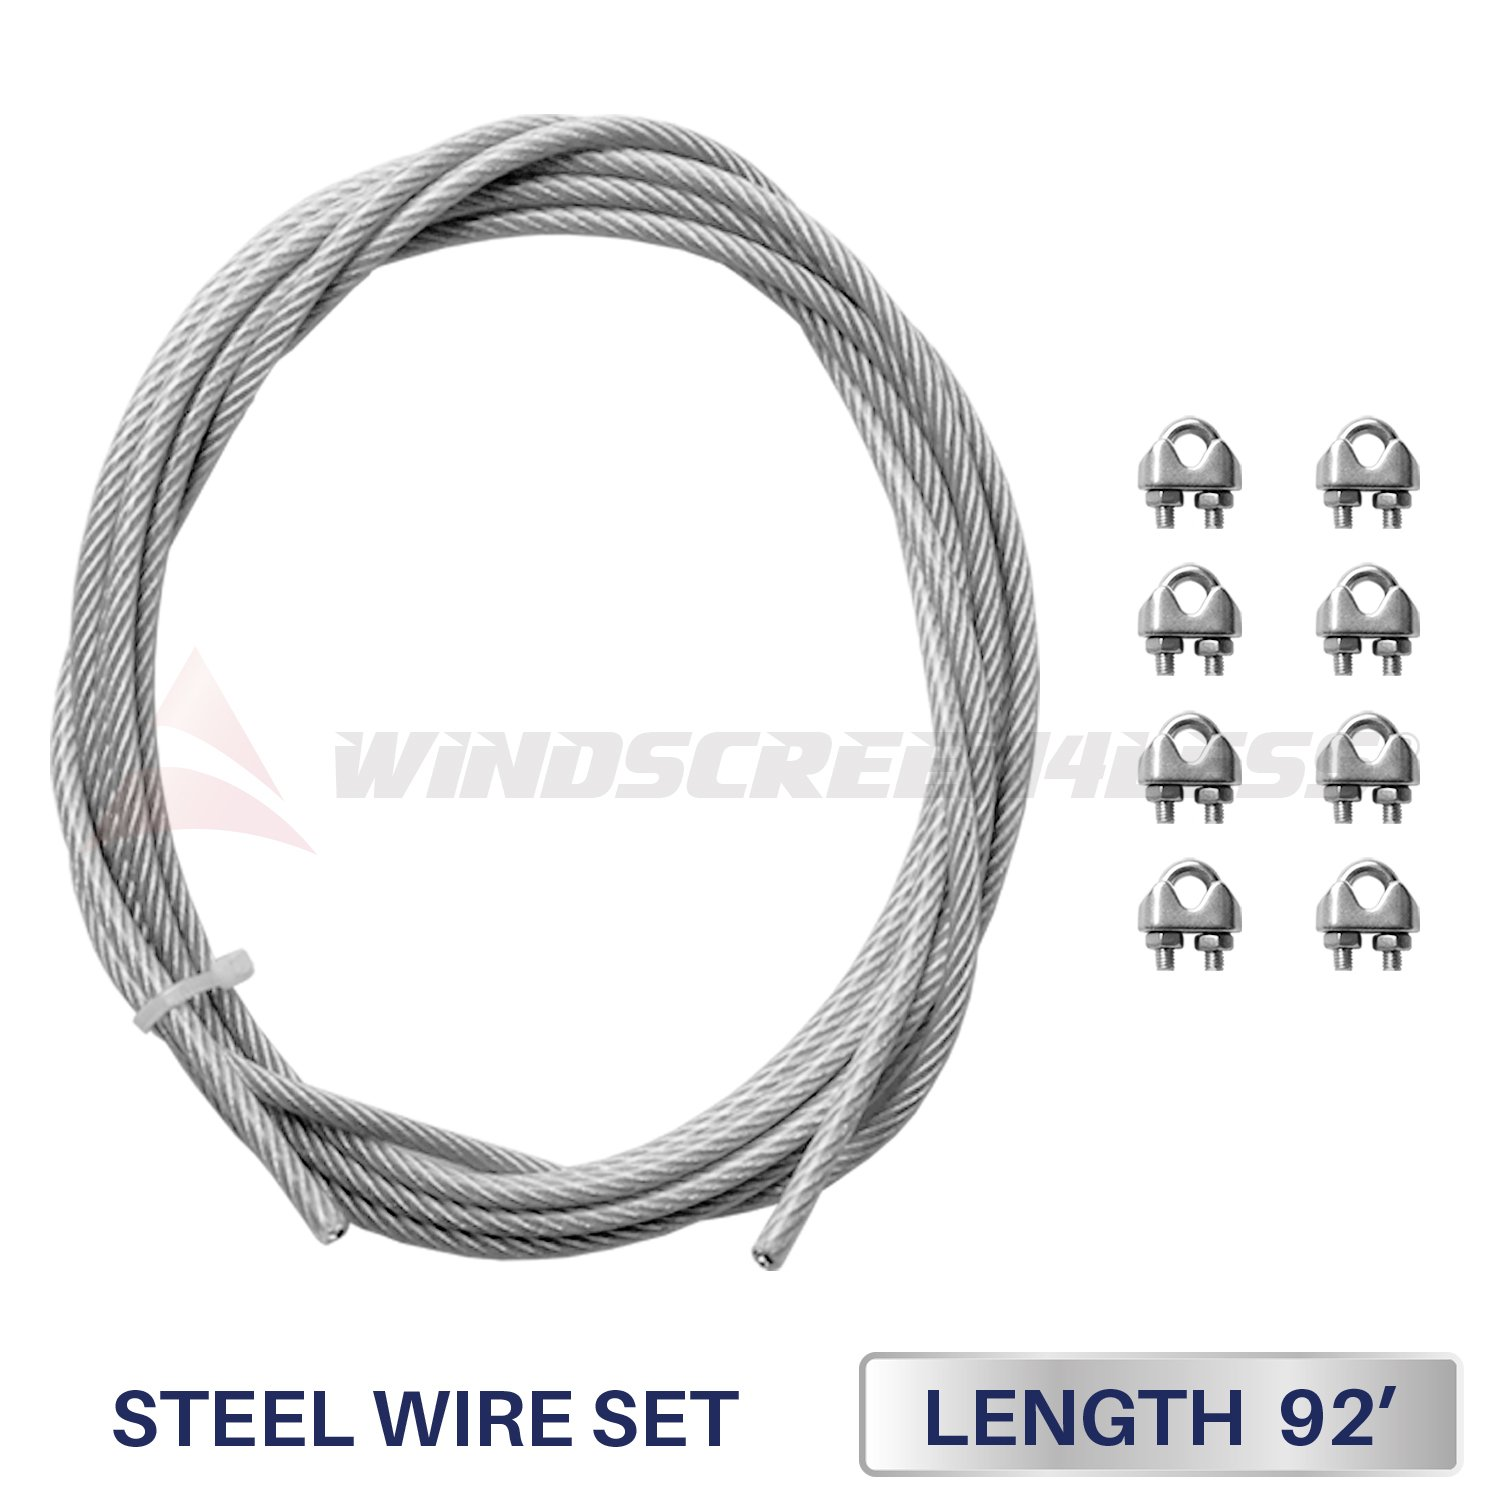 Windscreen4less Shade Sail Wire Rope and 8 Pcs Clips, Vinyl Coated Wire Cable Galvanized Metal Clamp, 3/16-Inch x 92 Feet